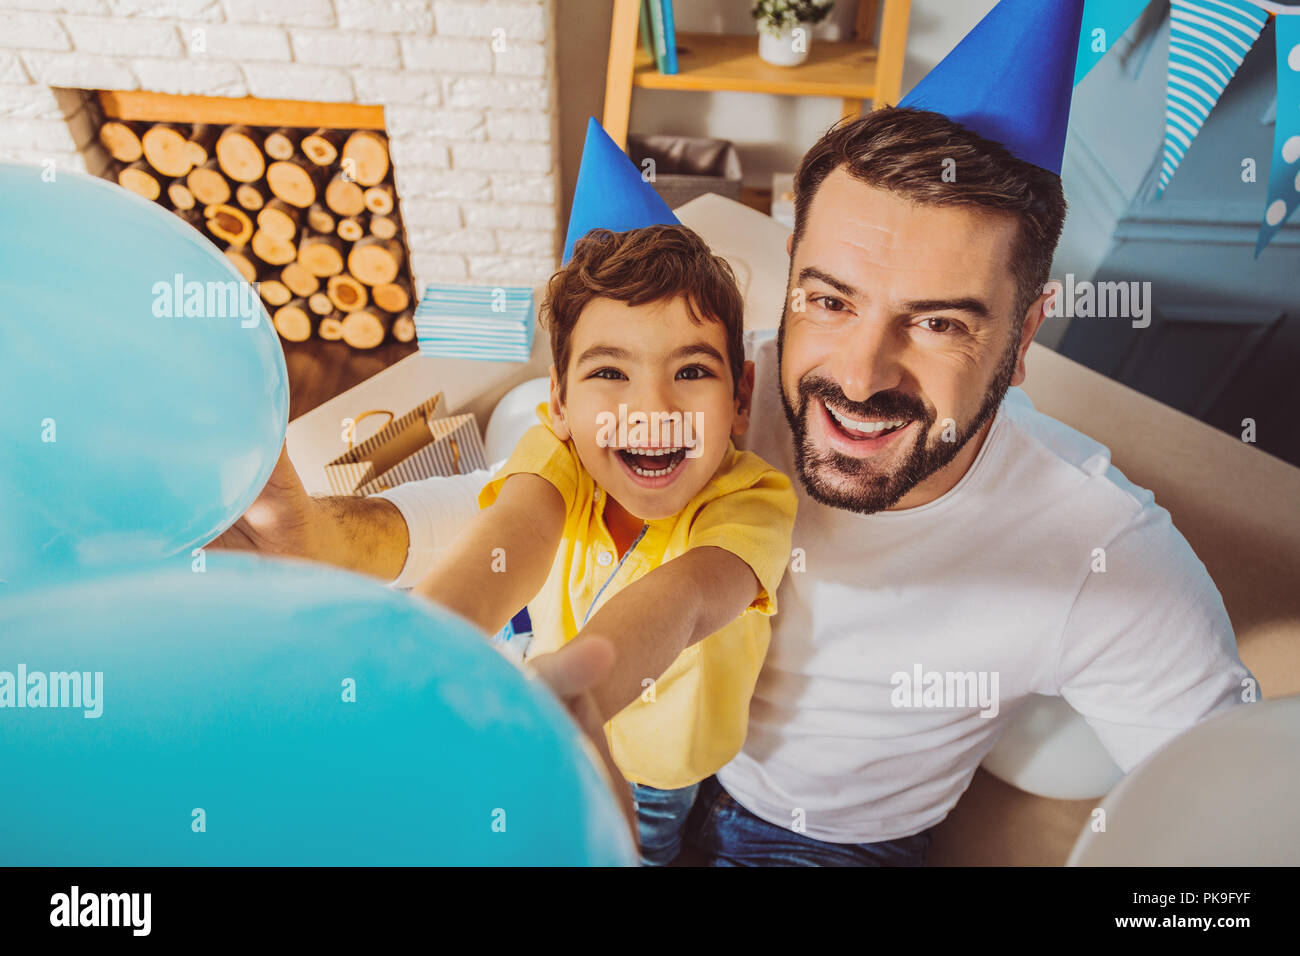 Handsome nice man and boy toying with balloons - Stock Image